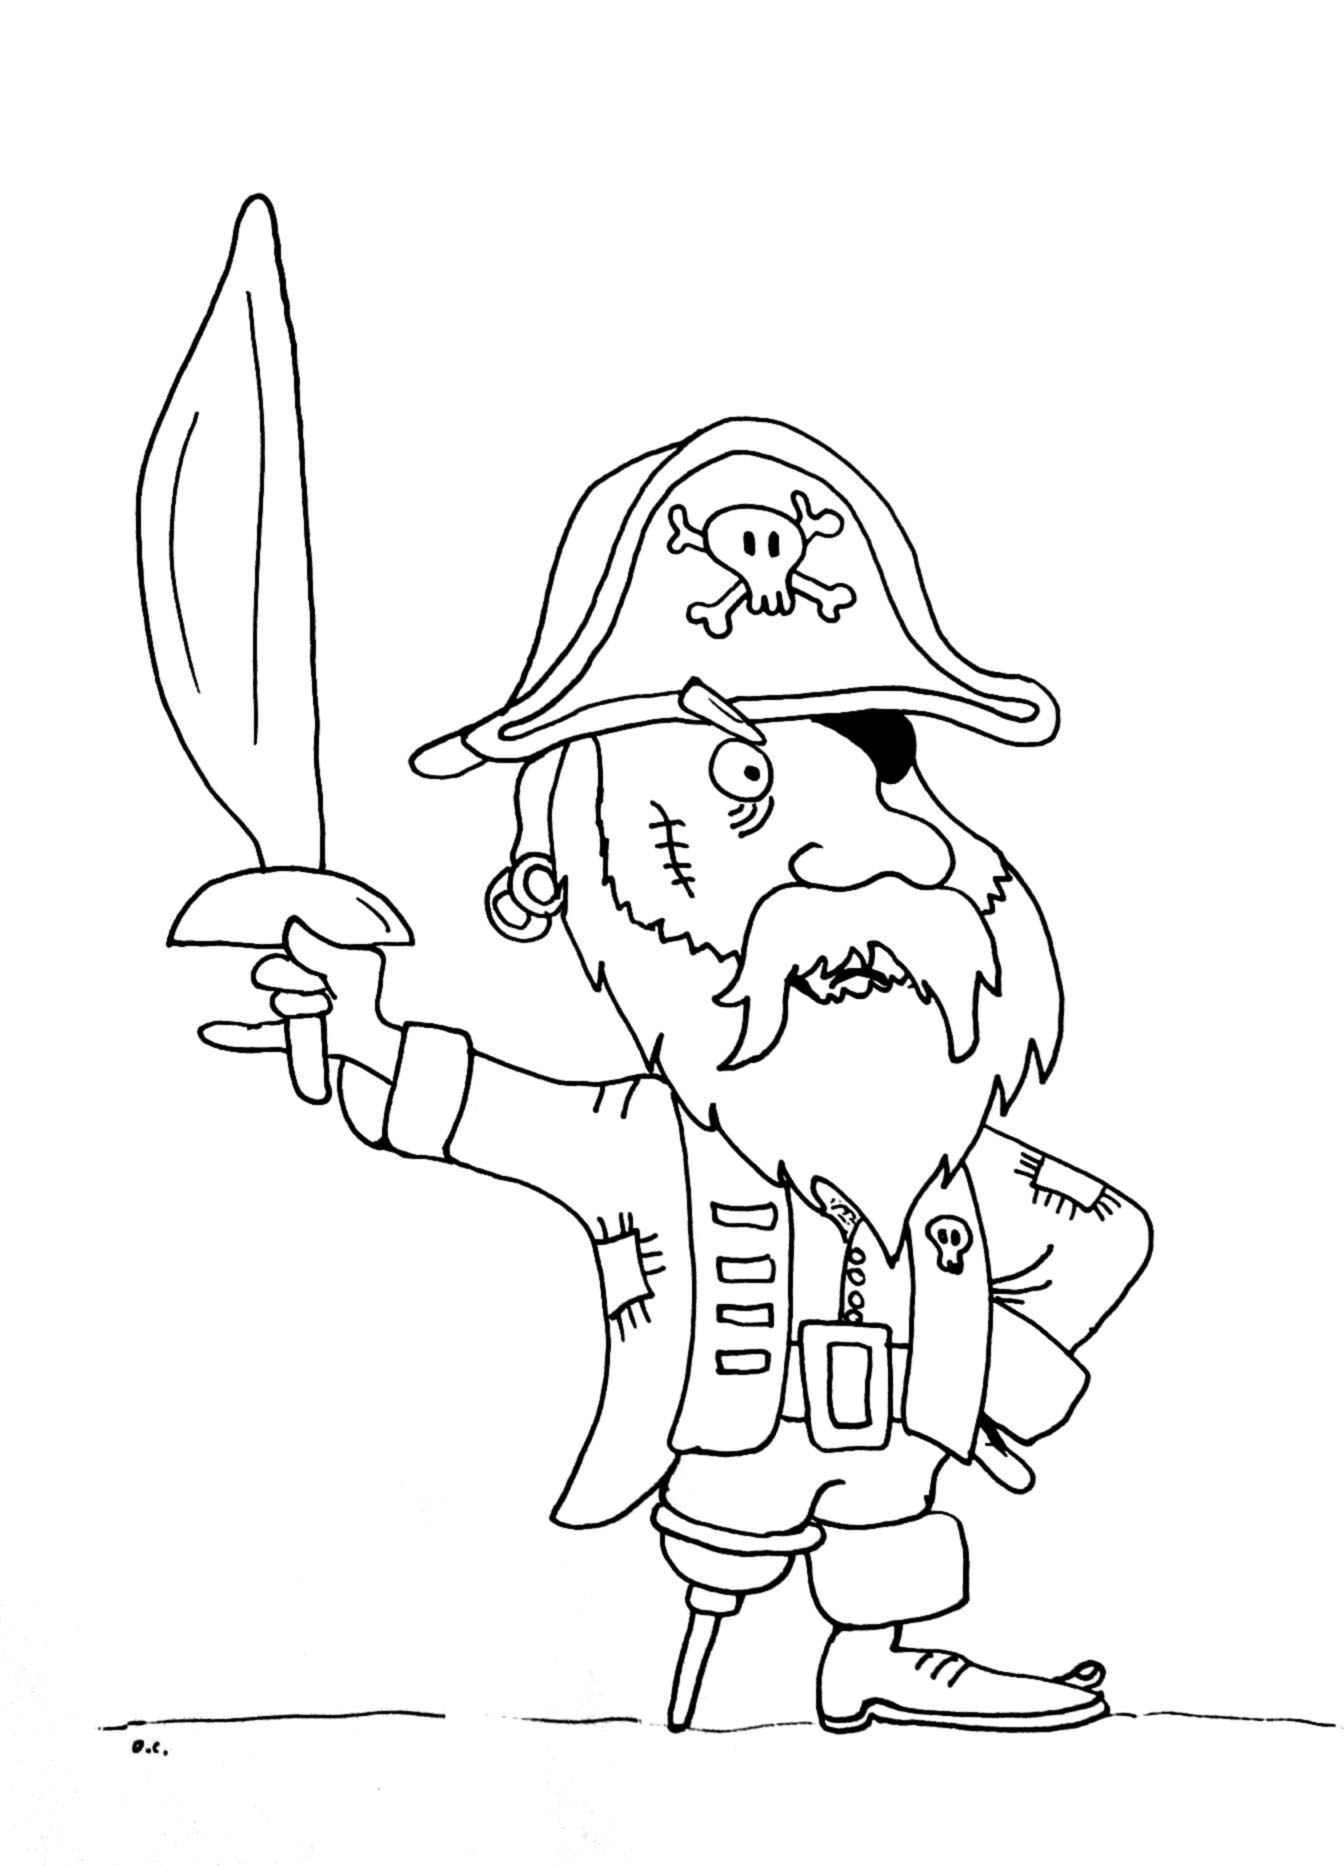 Pirate jambe bois coloriage de pirates coloriages pour enfants - Dessins de pirates ...